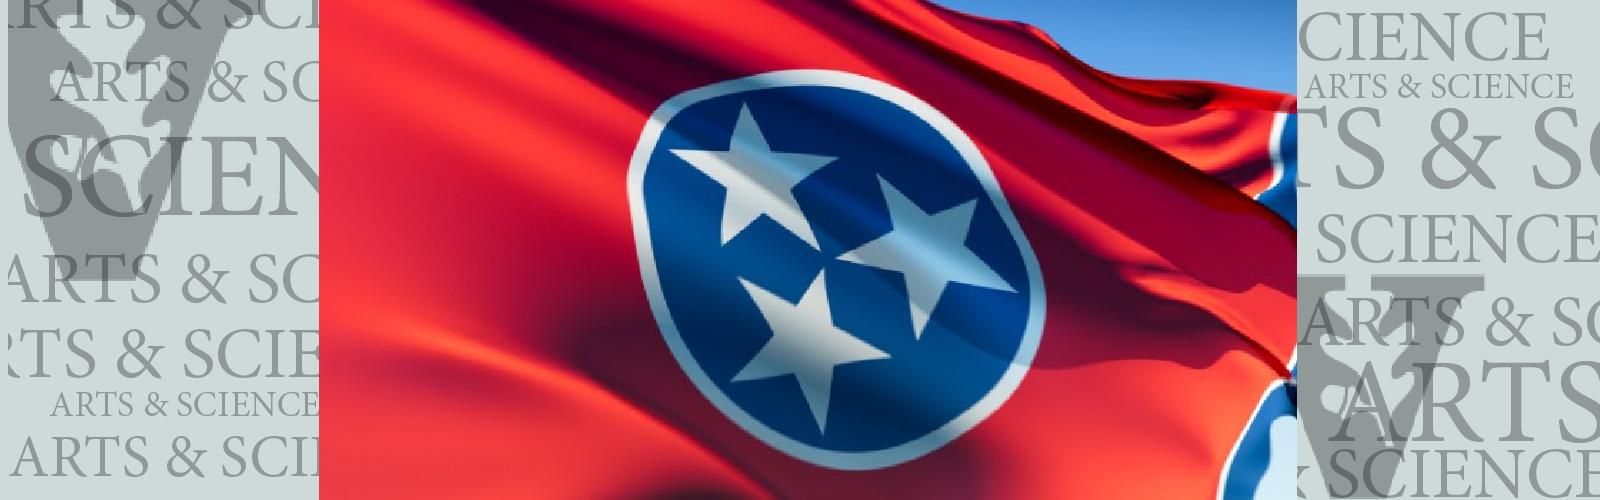 Vanderbilt Poll finds Tennesseans broadly united on key issues